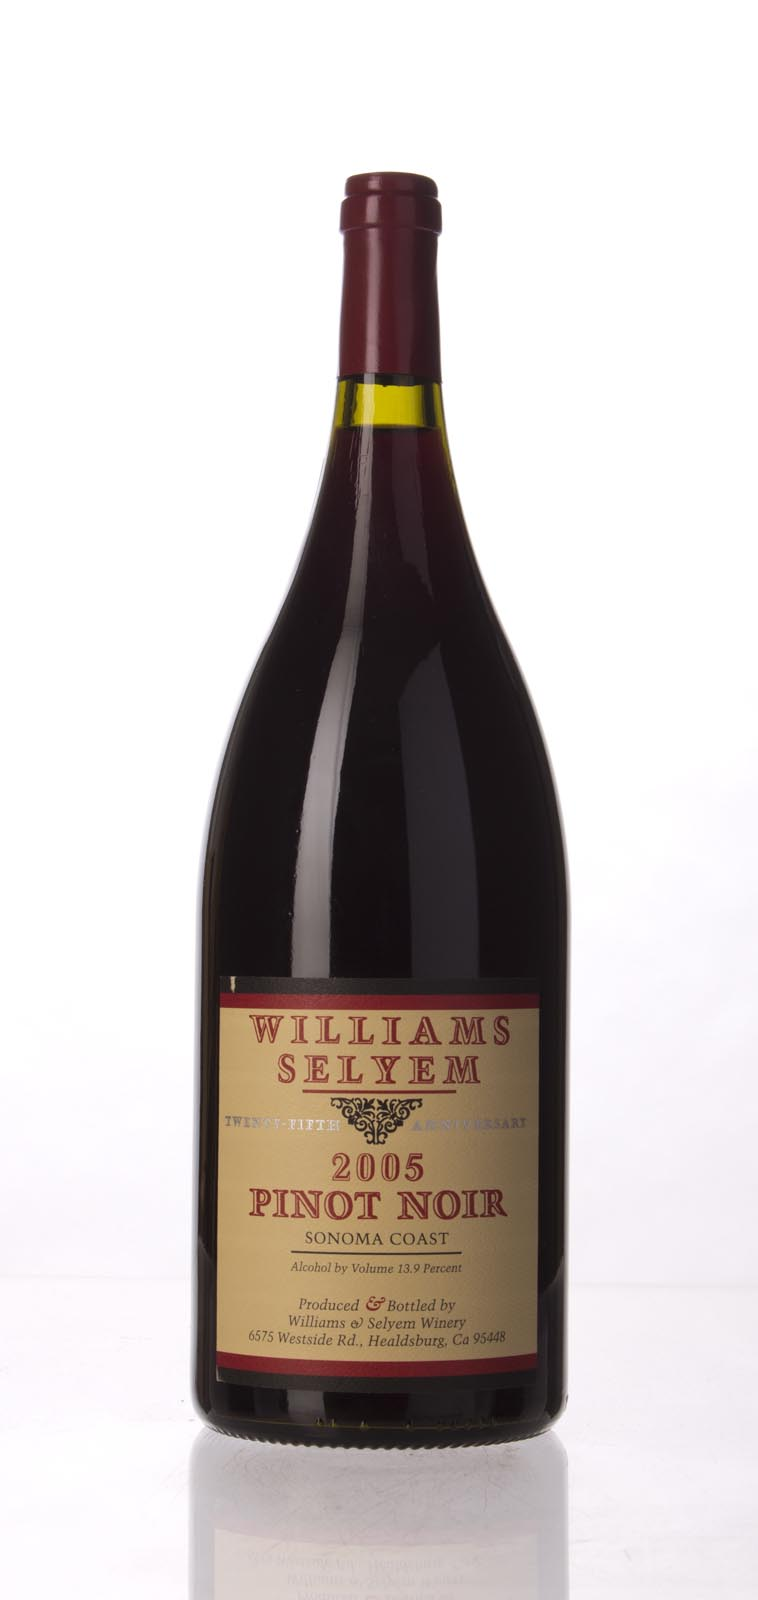 Williams Selyem Pinot Noir Sonoma Coast 2005, 1.5L (ST90) from The BPW - Merchants of rare and fine wines.